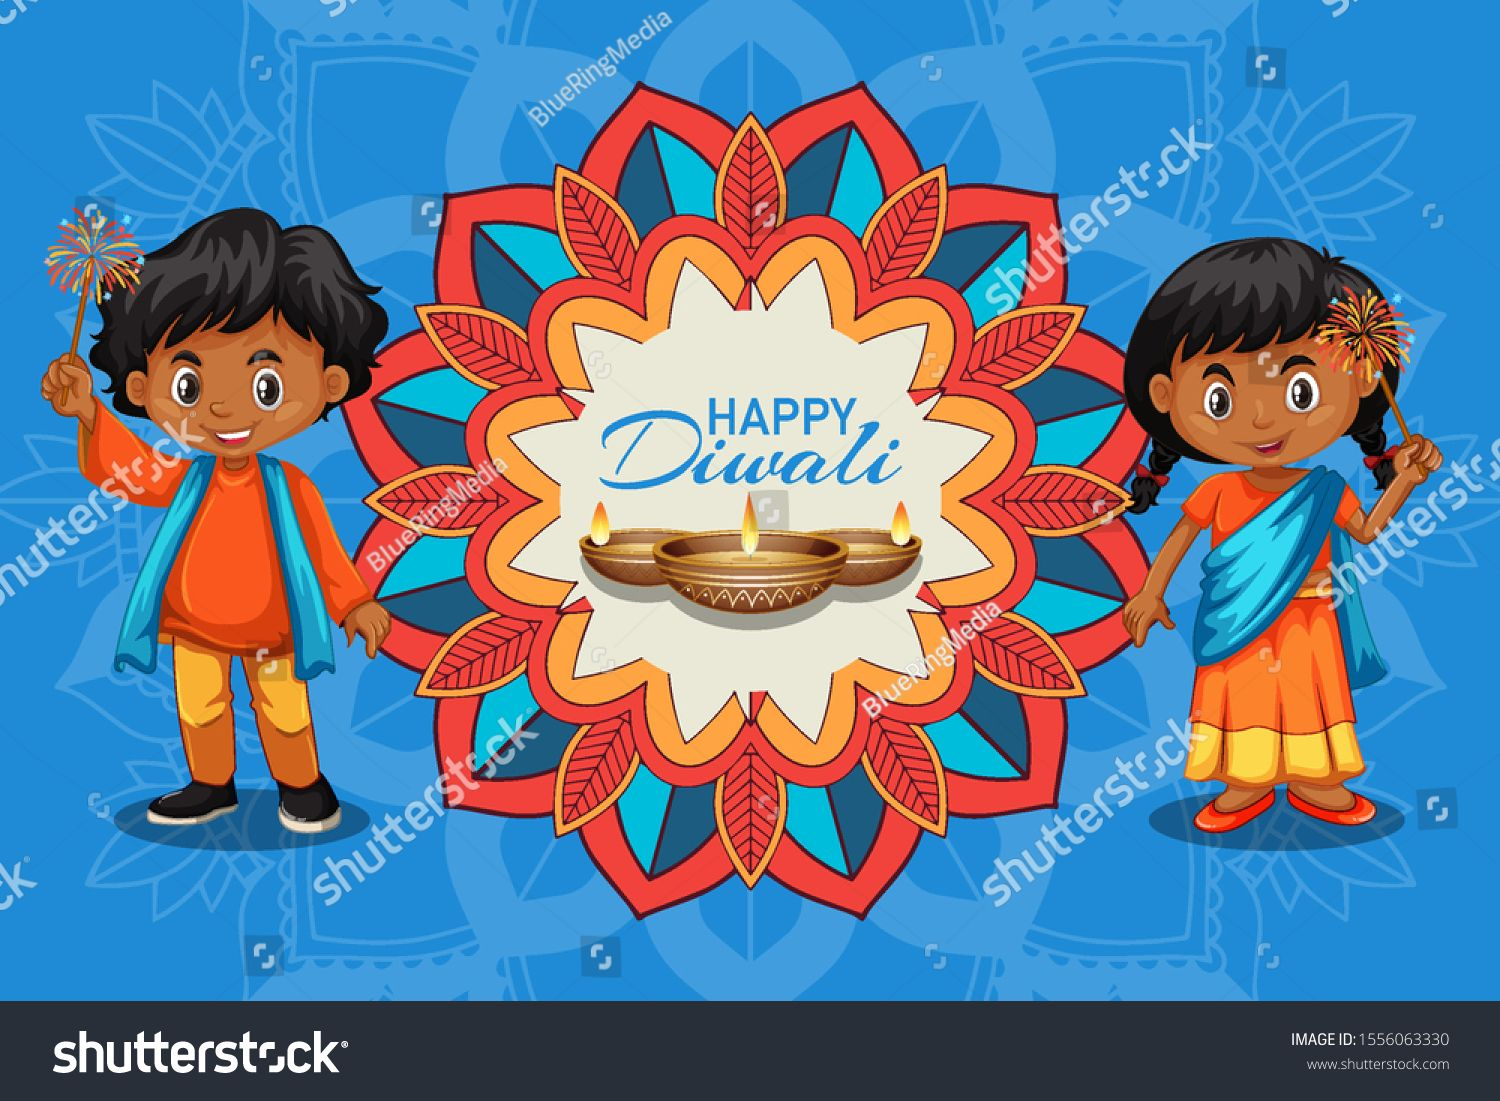 Poster Design For Diwali Festival With Kids And Candle Illustration Ad Ad Diwali Design Poster Festival Candle Illustration Diwali Festival Kids Candles